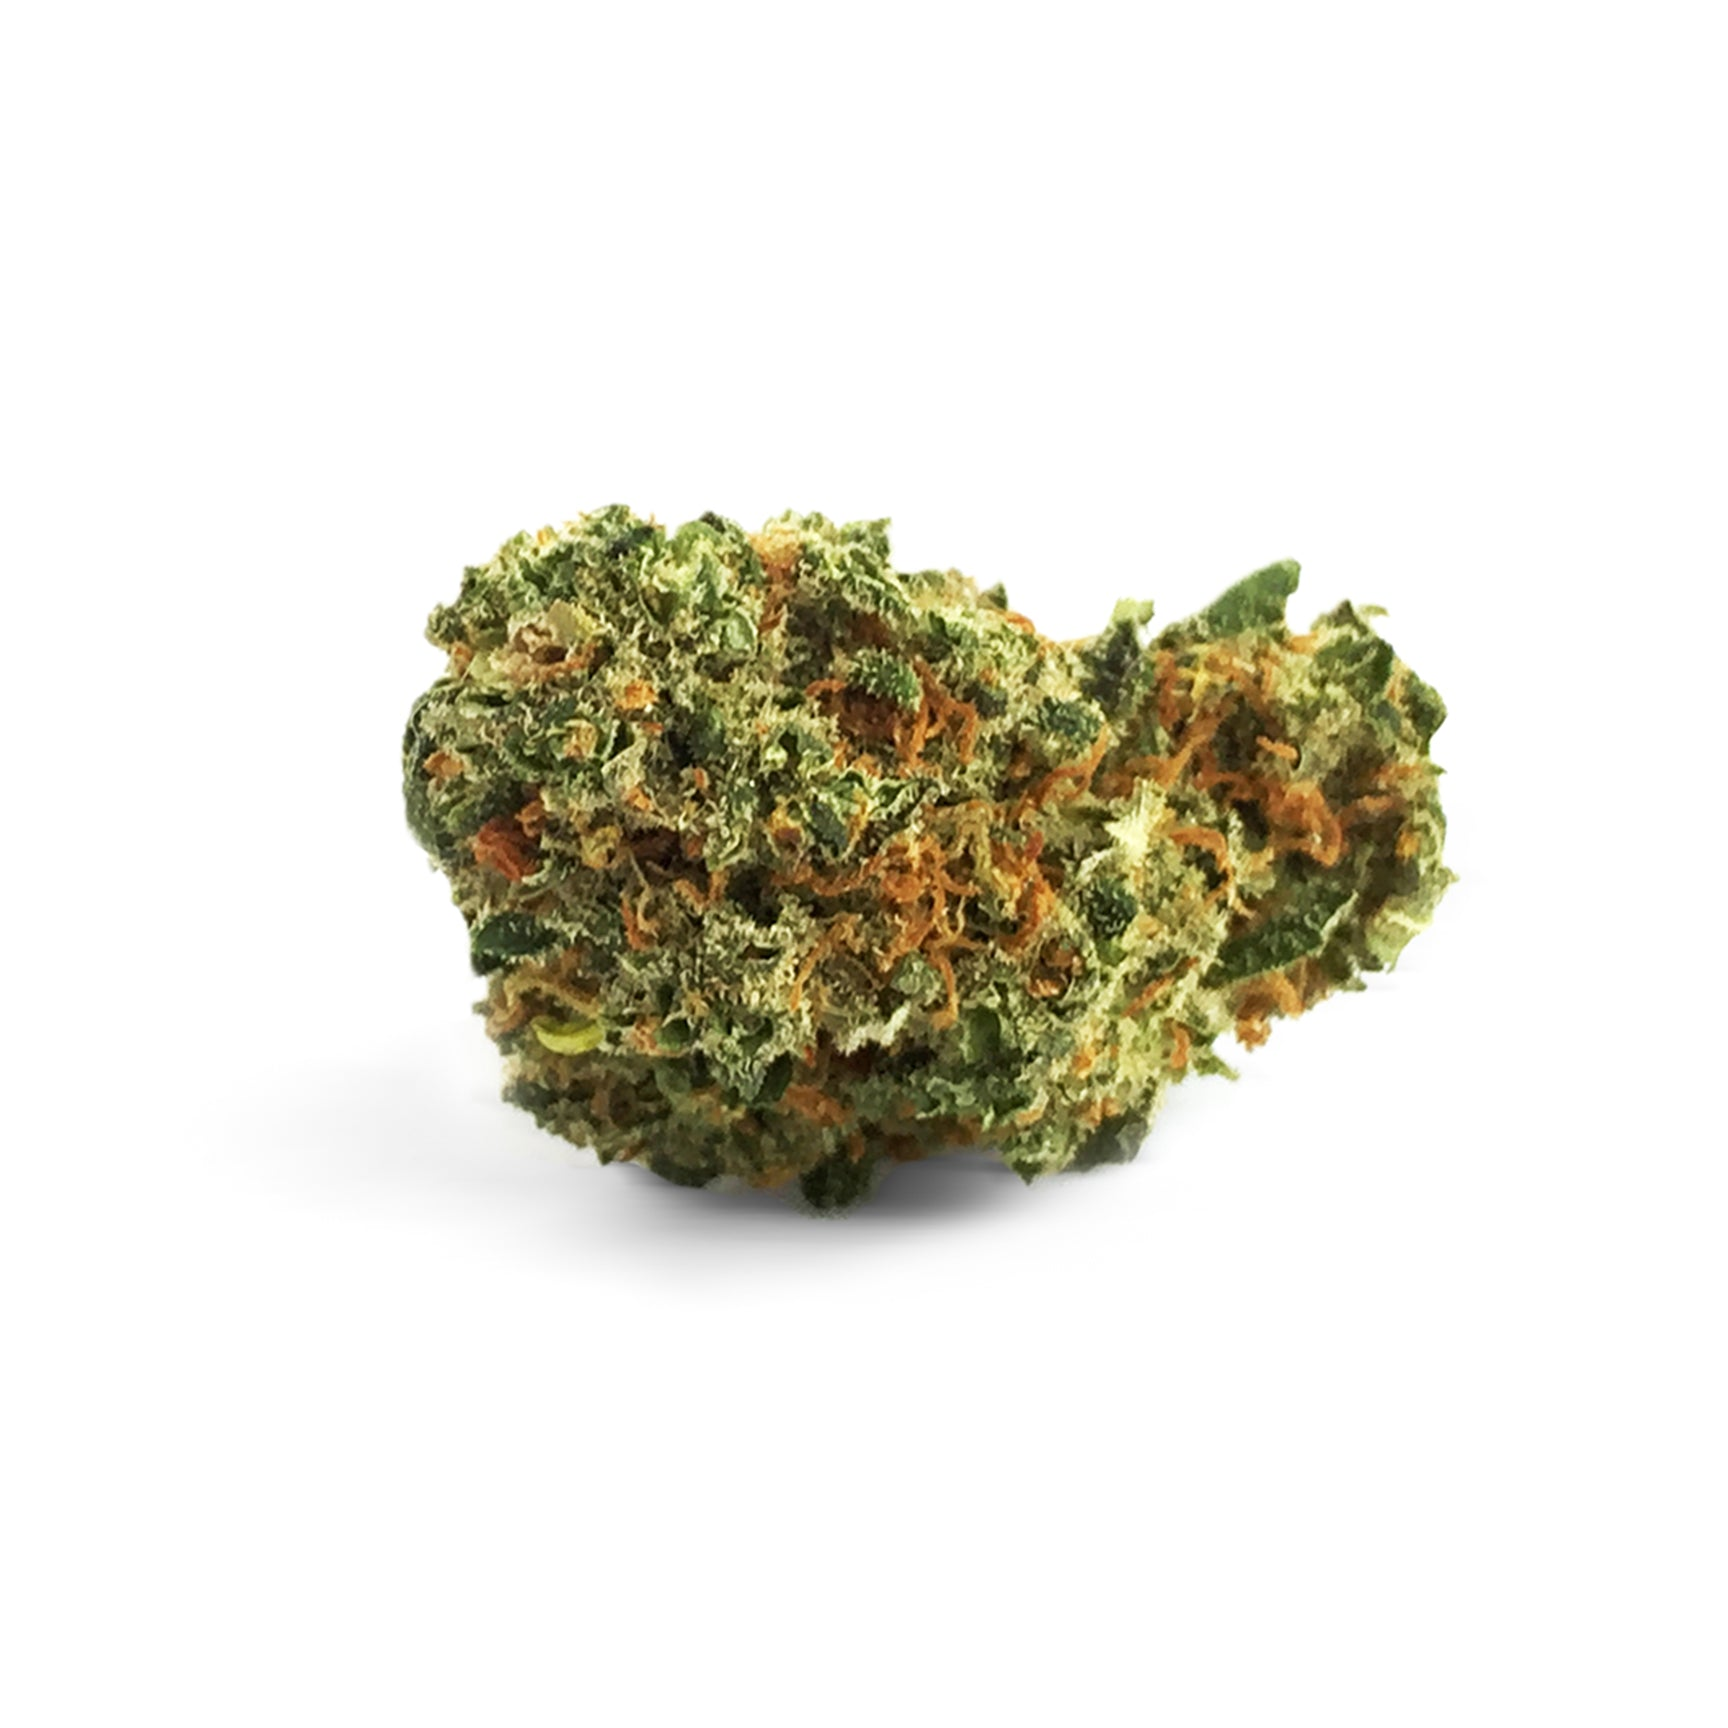 24K-CBD Cannabis-Sinsemilla-Swiss CBD Shop-uWeed